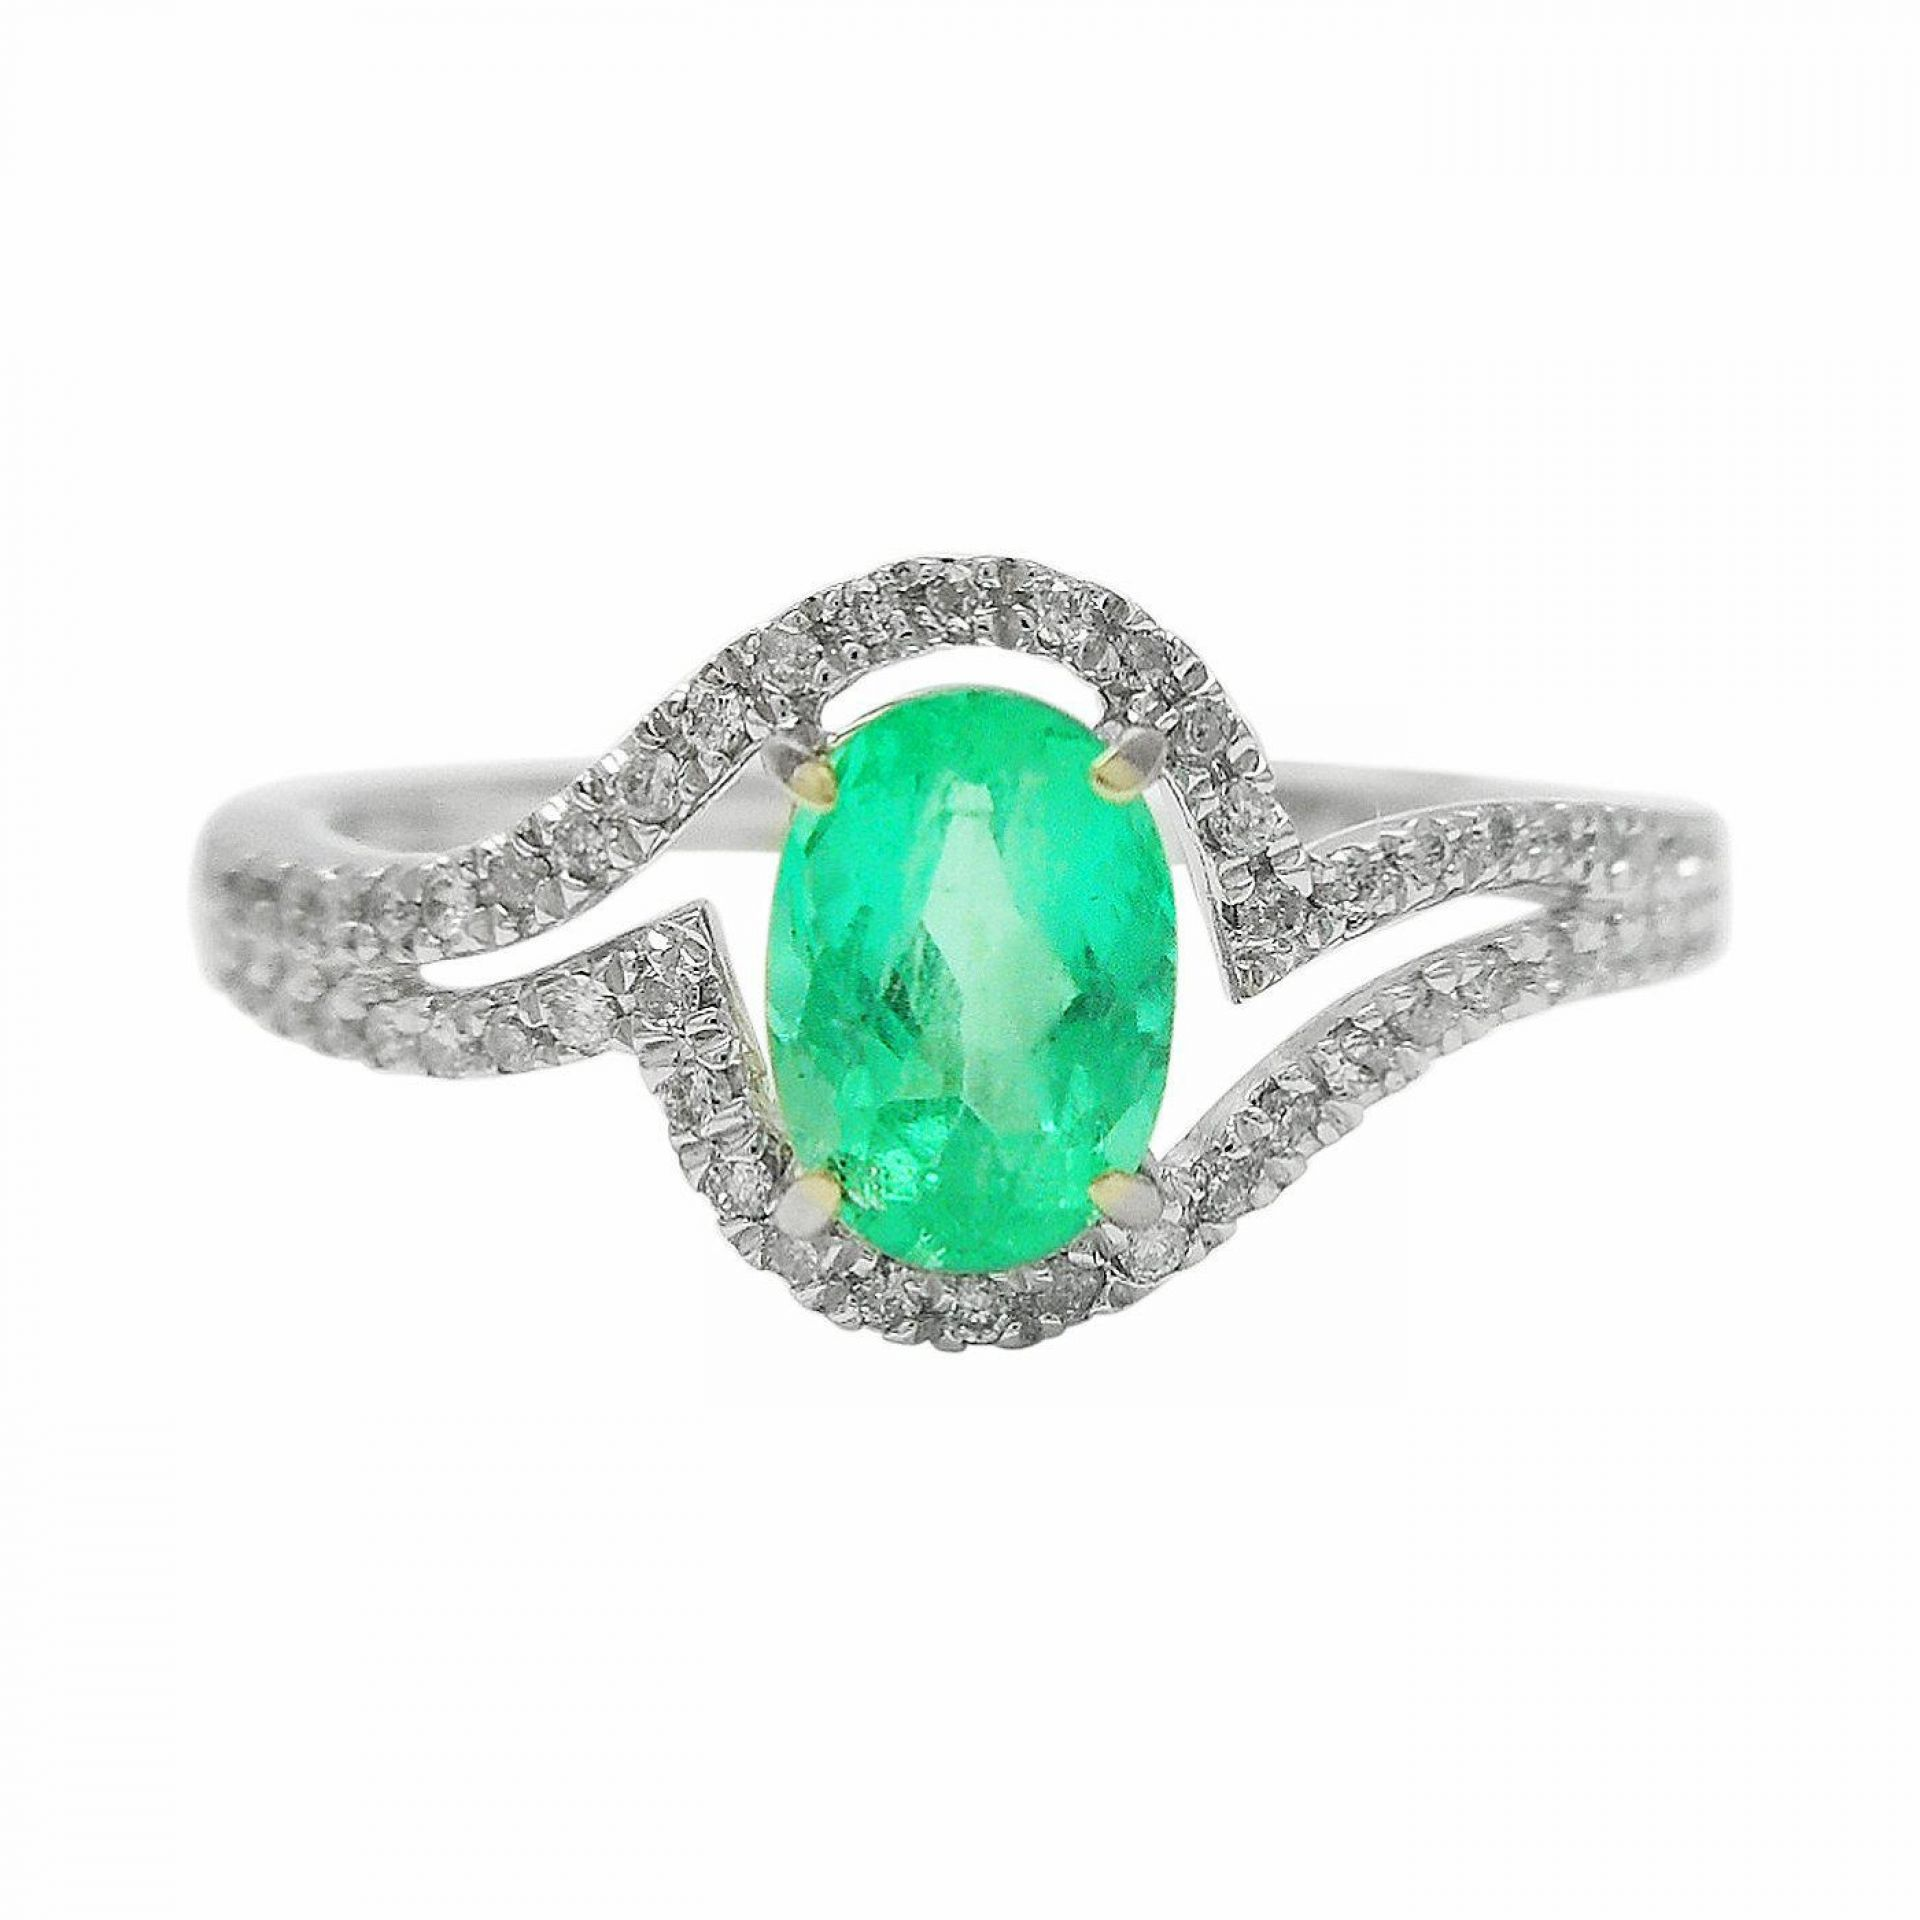 0.56ct Emerald and 0.11ctw Diamond 14KT White Gold Ring